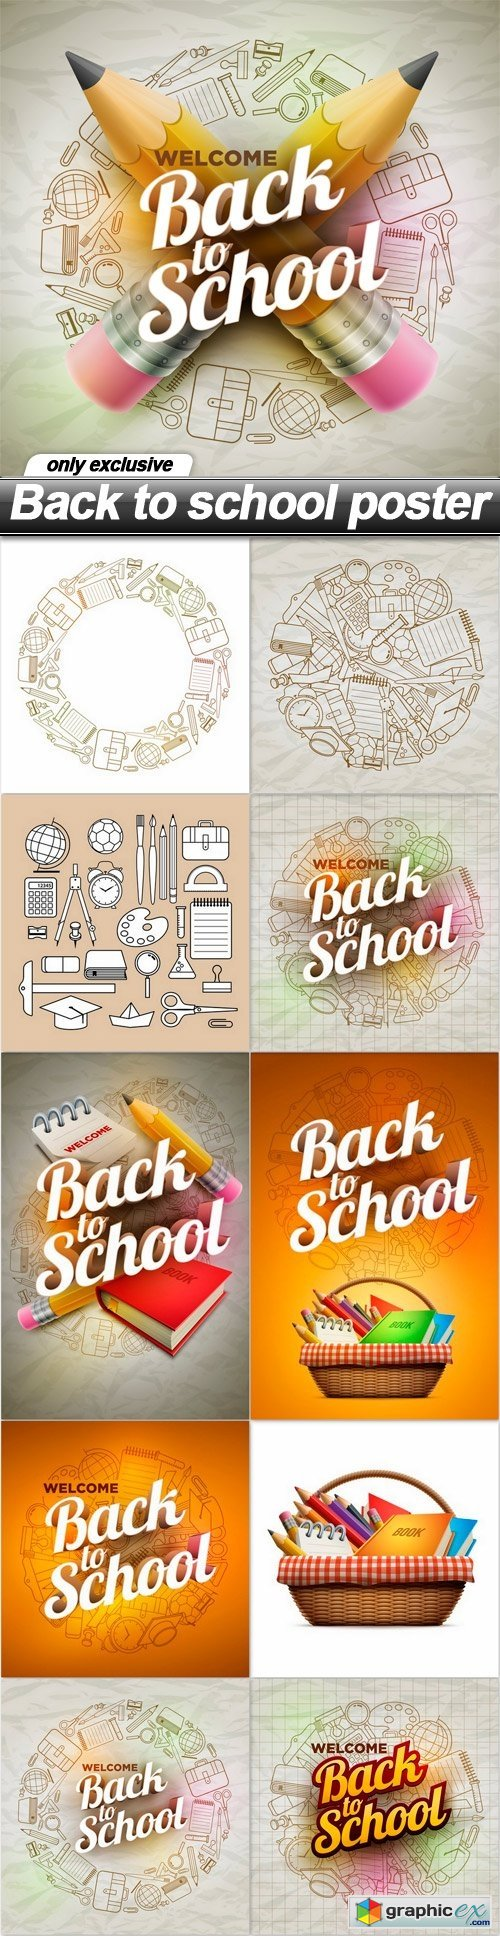 Back to school poster - 11 EPS